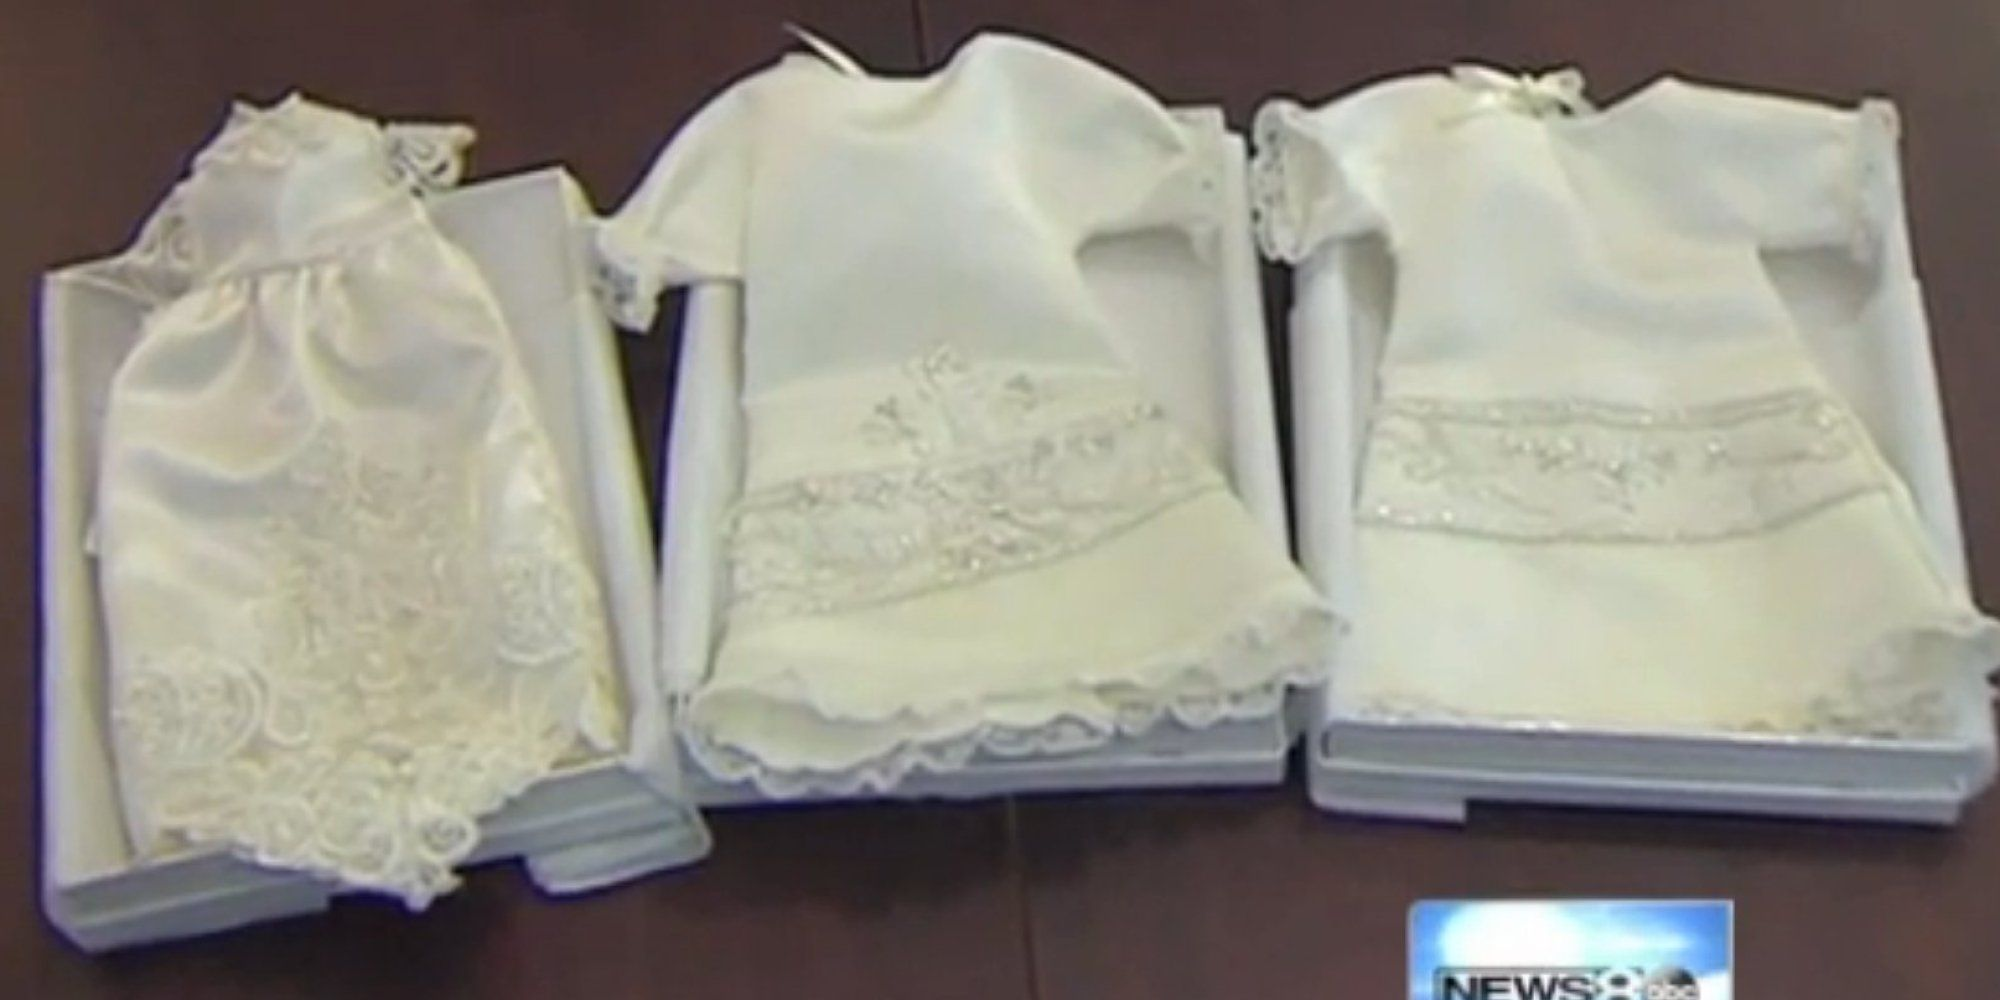 What an absolutely amazing thing to do with your wedding dress